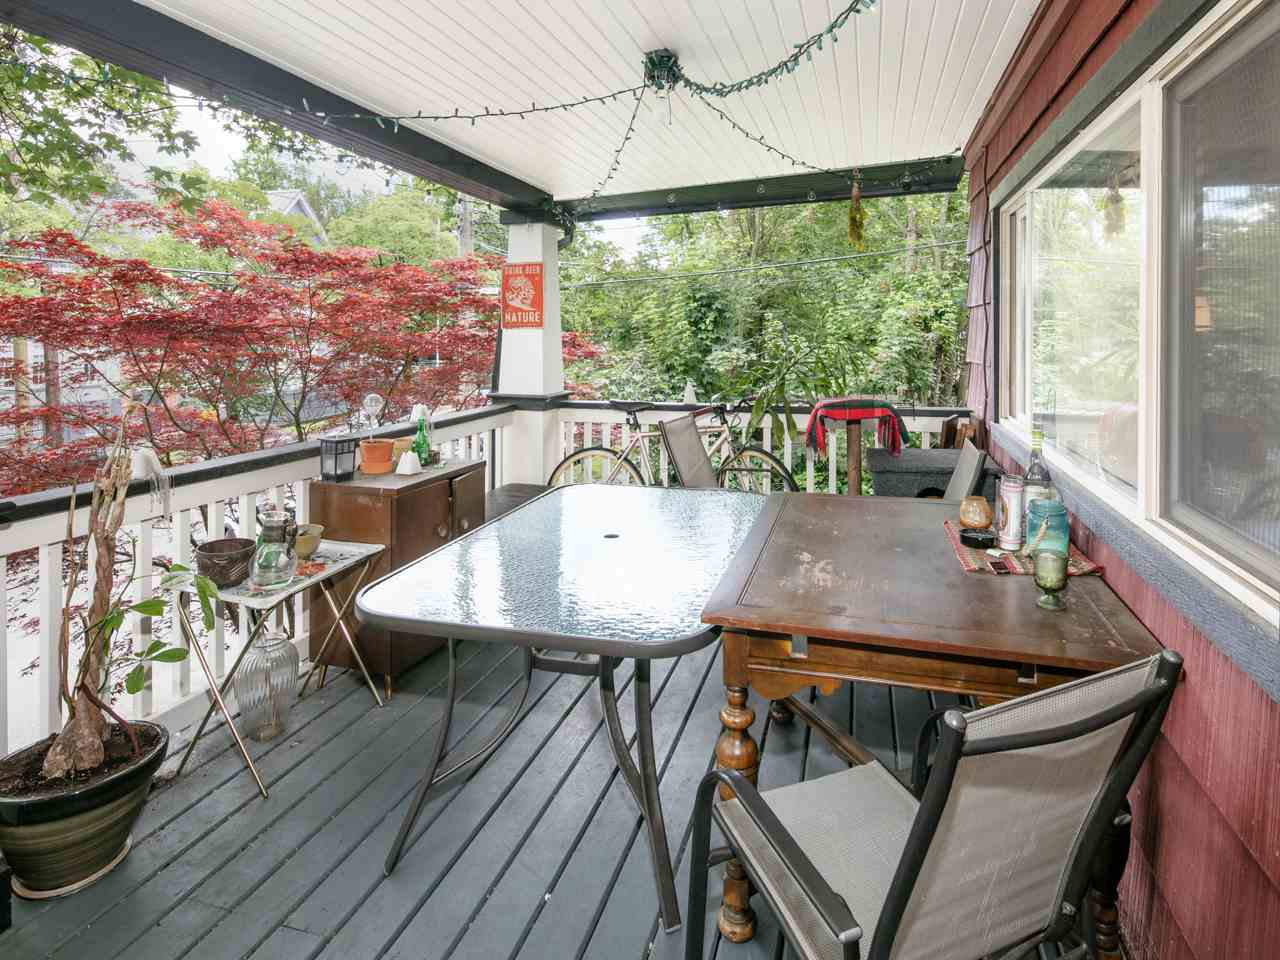 Photo 9: 3821 SOPHIA Street in Vancouver: Main House for sale (Vancouver East)  : MLS® # R2079723